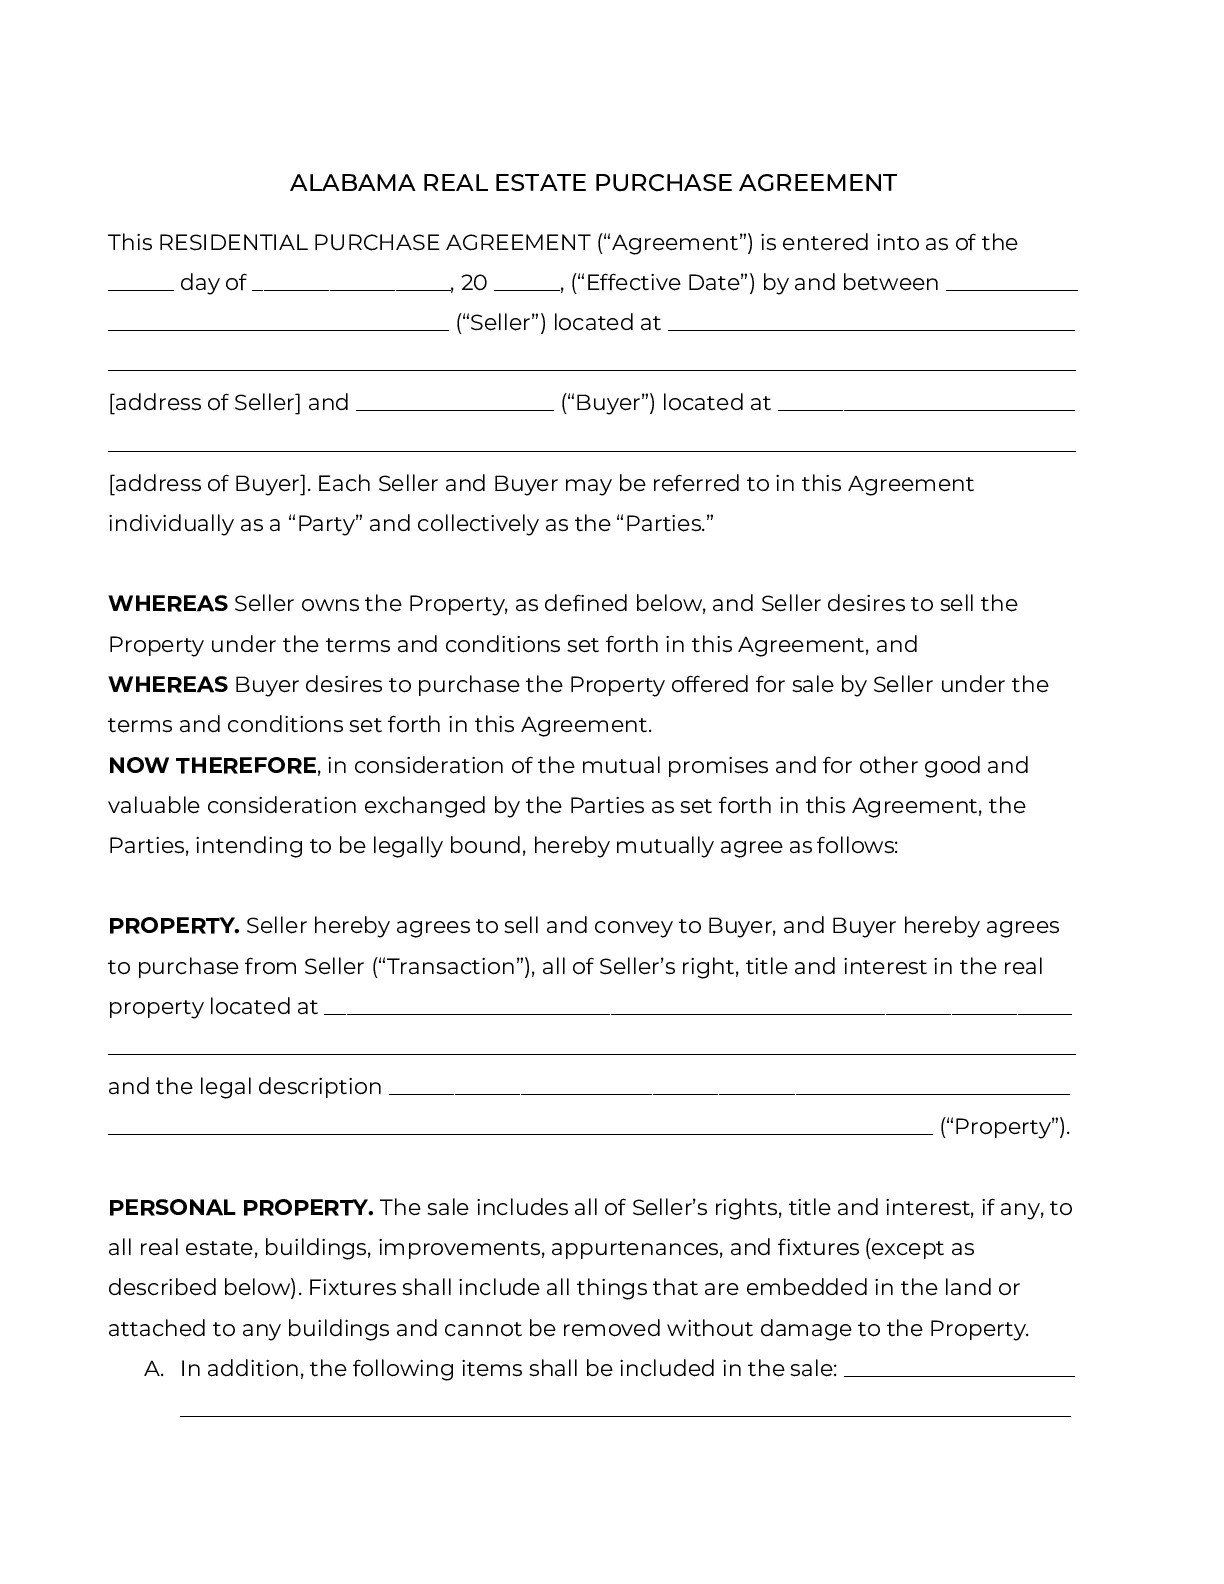 Real Estate Purchase Agreement Template Official Alabama Residential Purchase Agreement 2020 In 2021 Purchase Agreement Contract Template Agreement